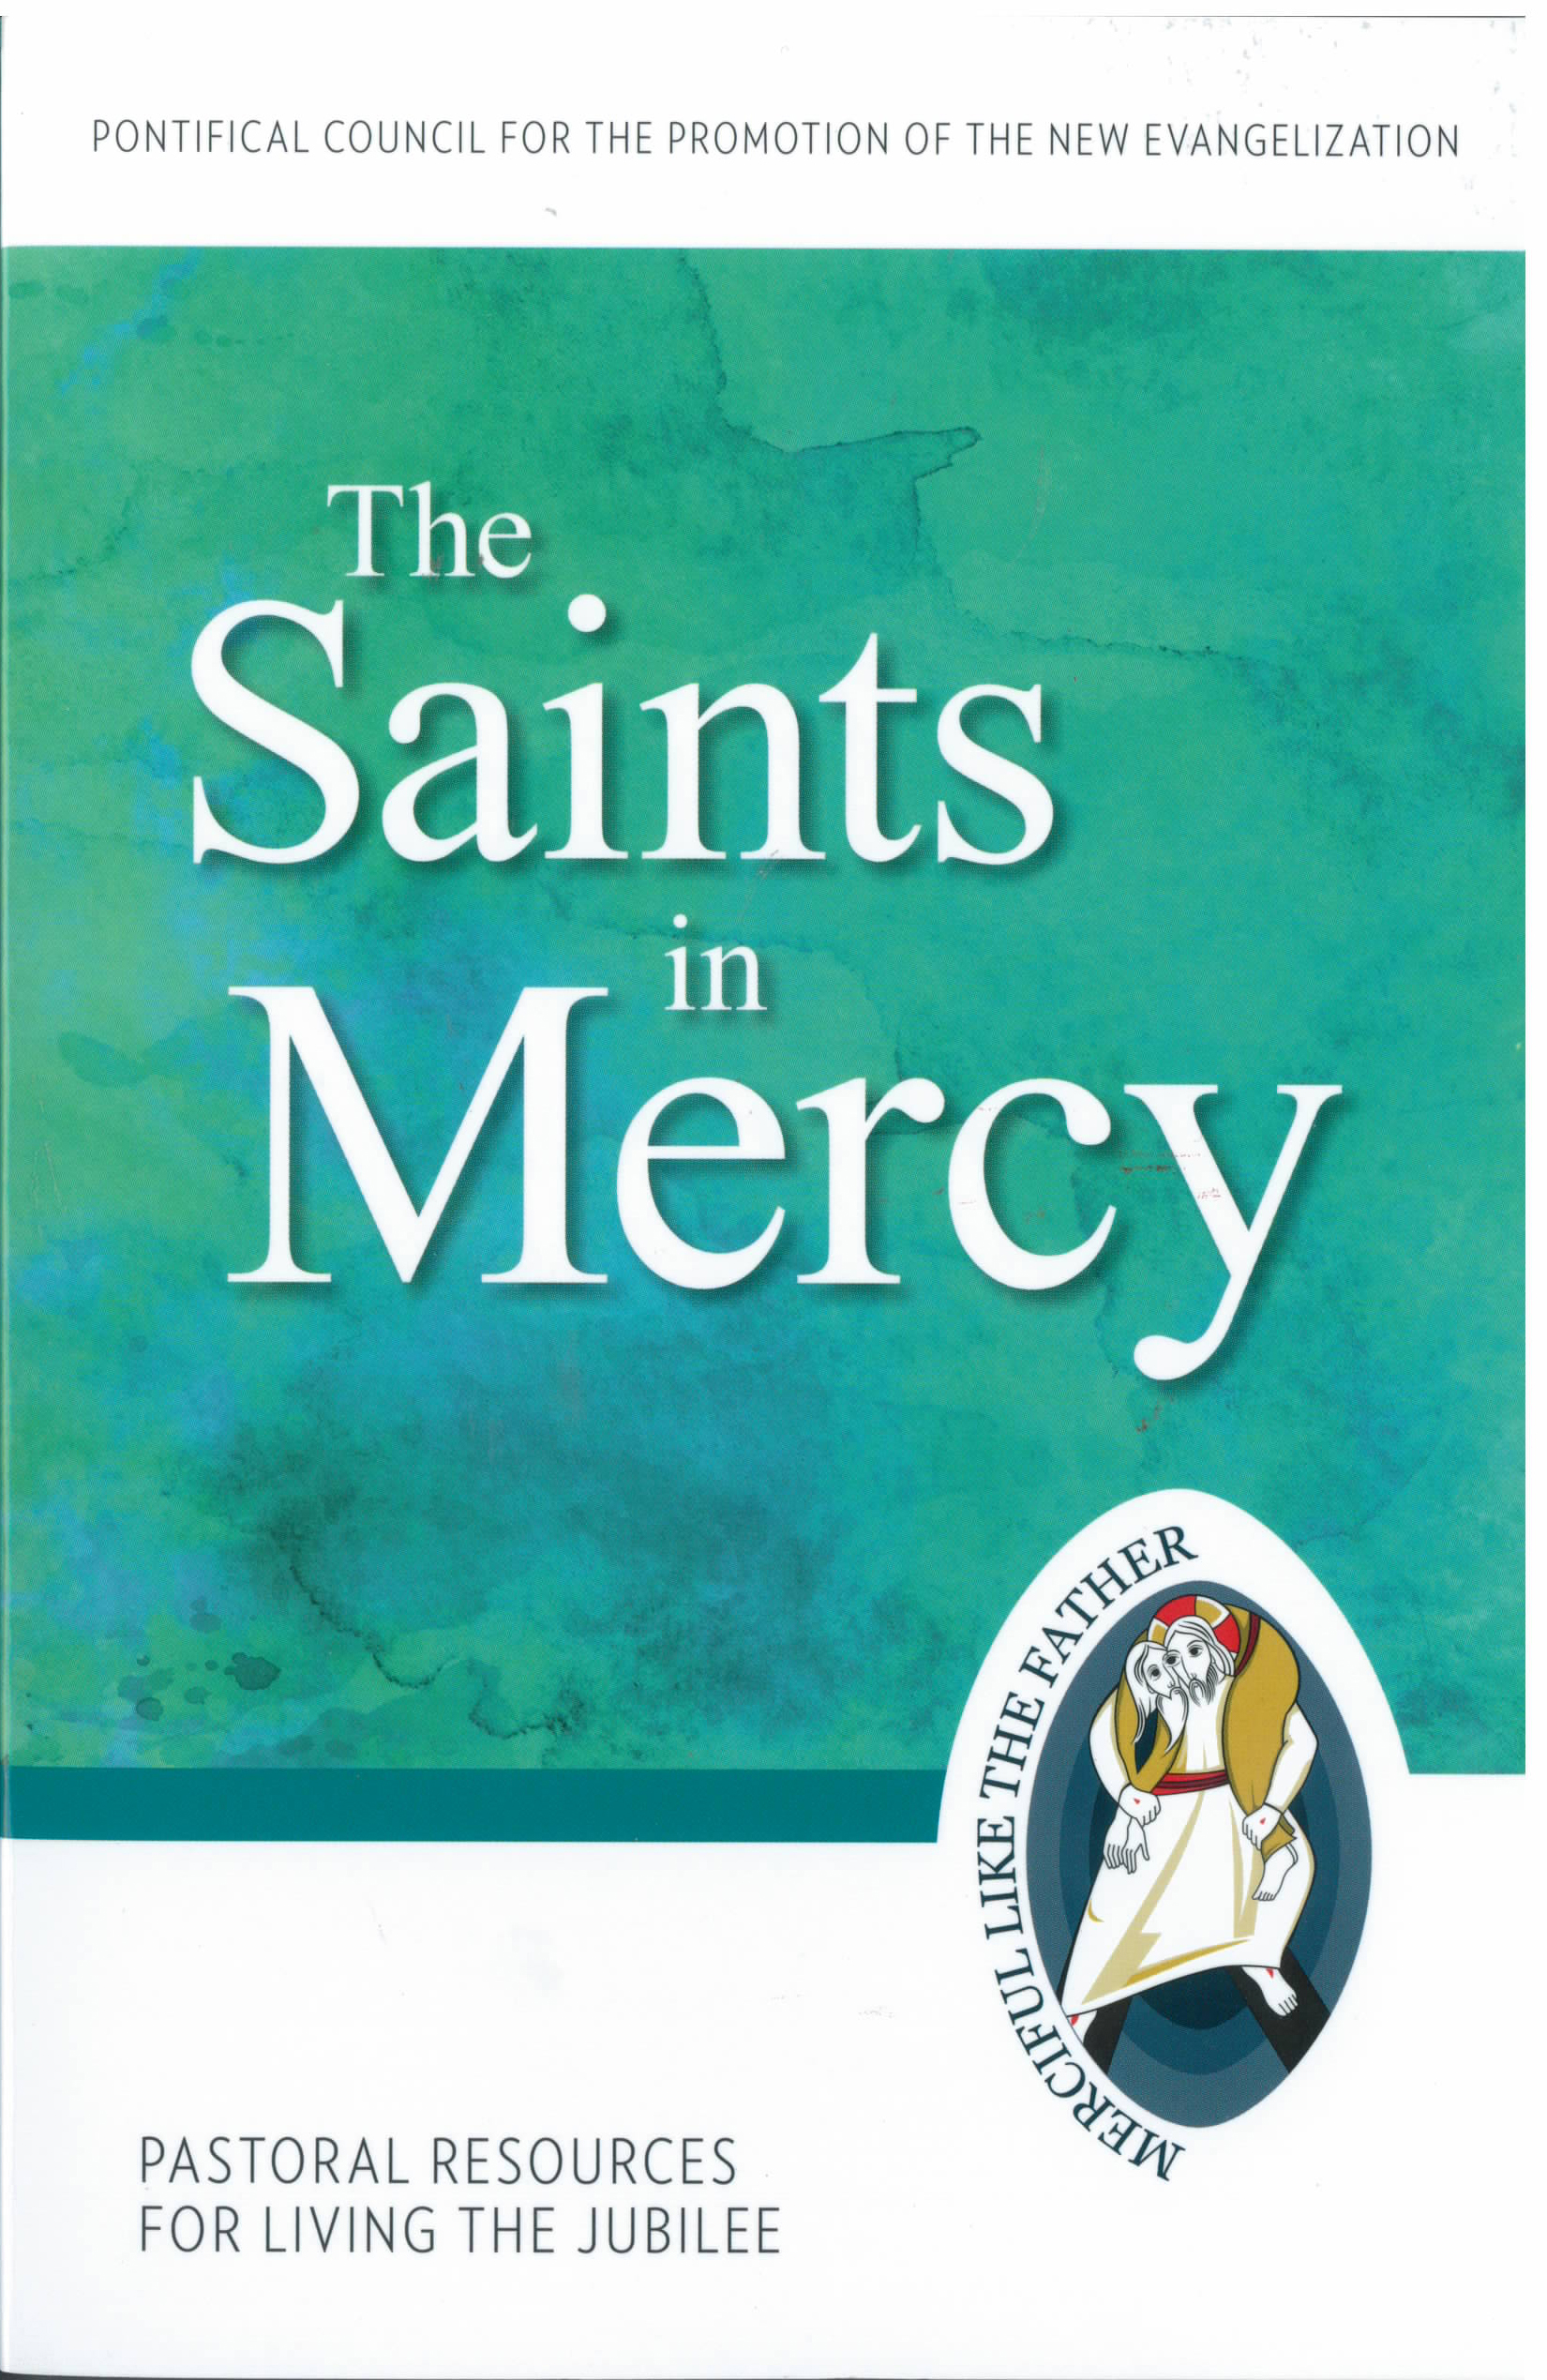 The Saints in Mercy 9781612789798 Pastoral Resources for Living the Jubilee Pontifical Council for the Promotion of the New Evangelization Year of Mercy Books